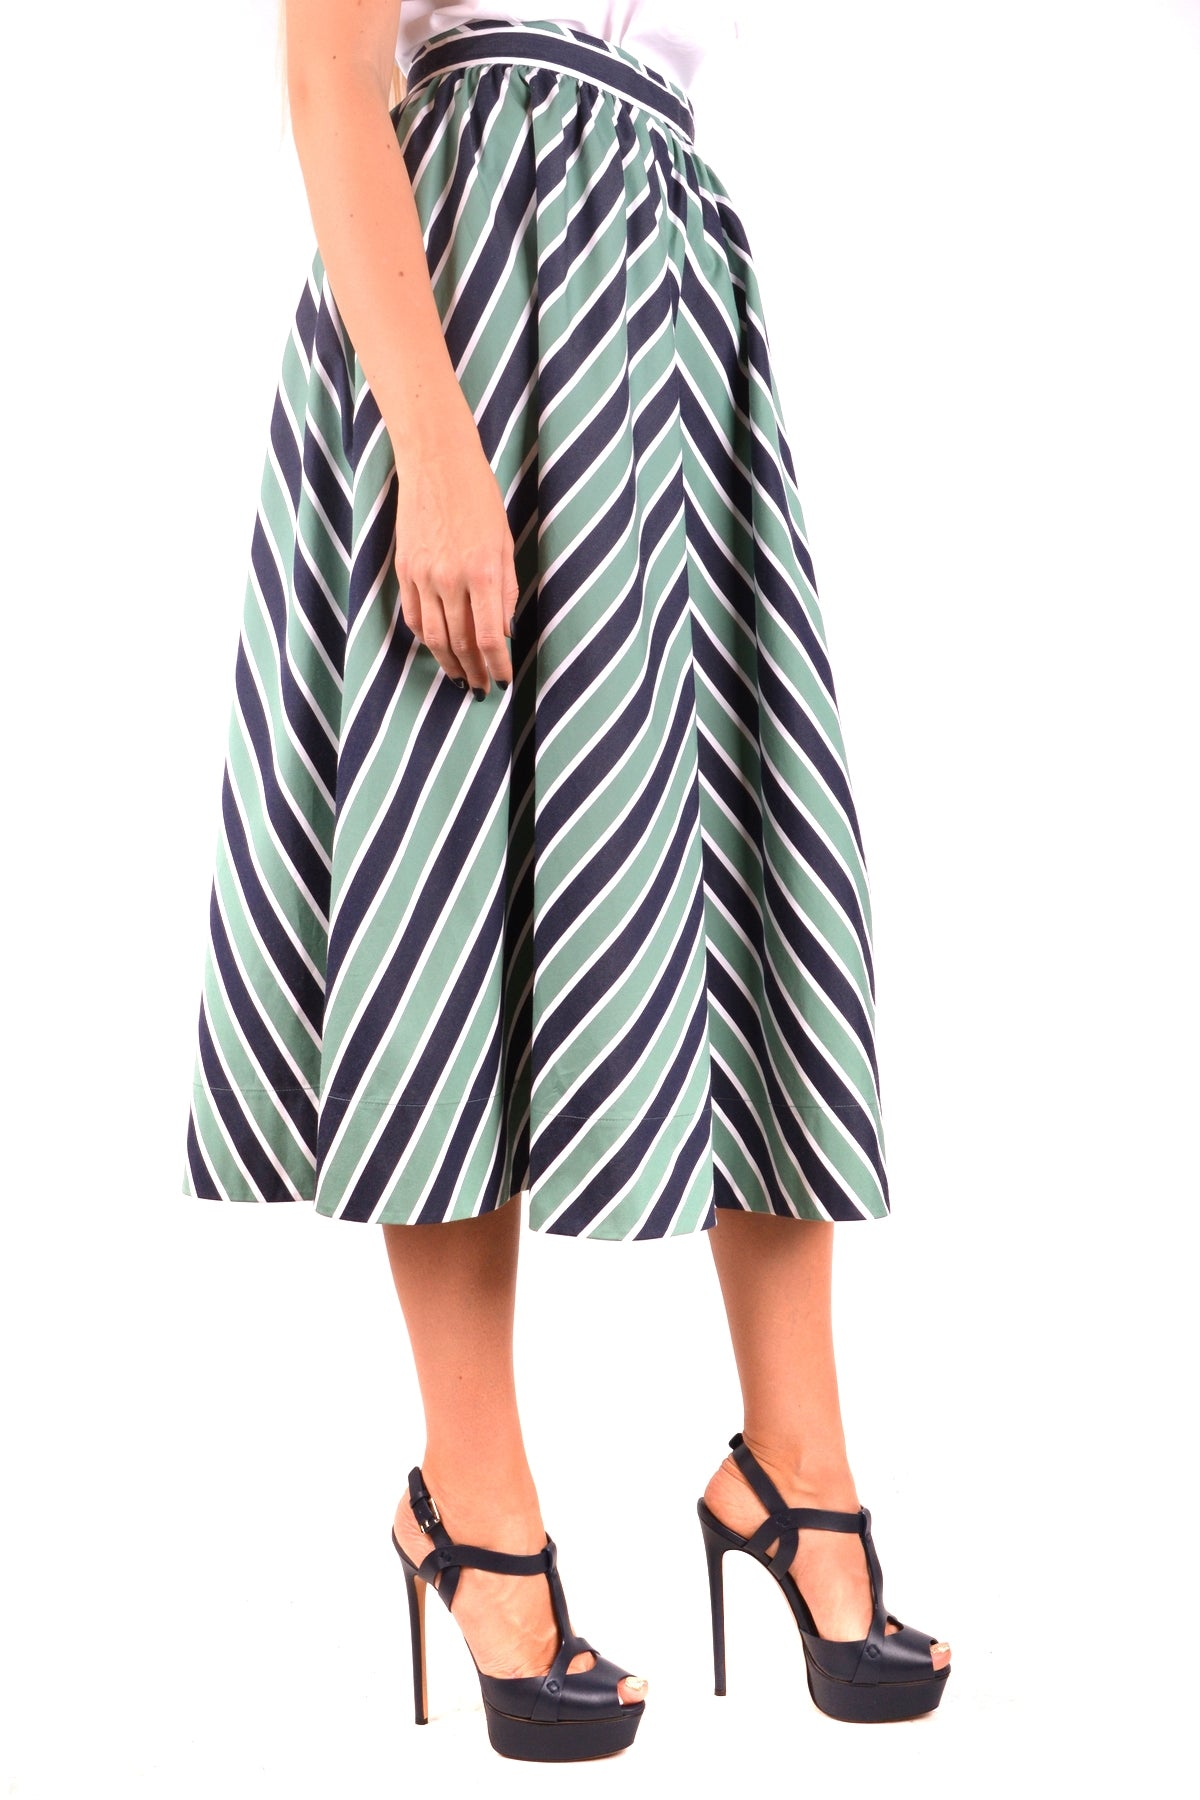 Skirt Fendi-Skirts - WOMAN-Product Details Season: Spring / SummerTerms: New With LabelMain Color: GreenGender: WomanMade In: ItalyManufacturer Part Number: Fq6732 A1Uw F12B7Size: ItYear: 2018Clothing Type: SkirtComposition: Cotton 100%-Keyomi-Sook